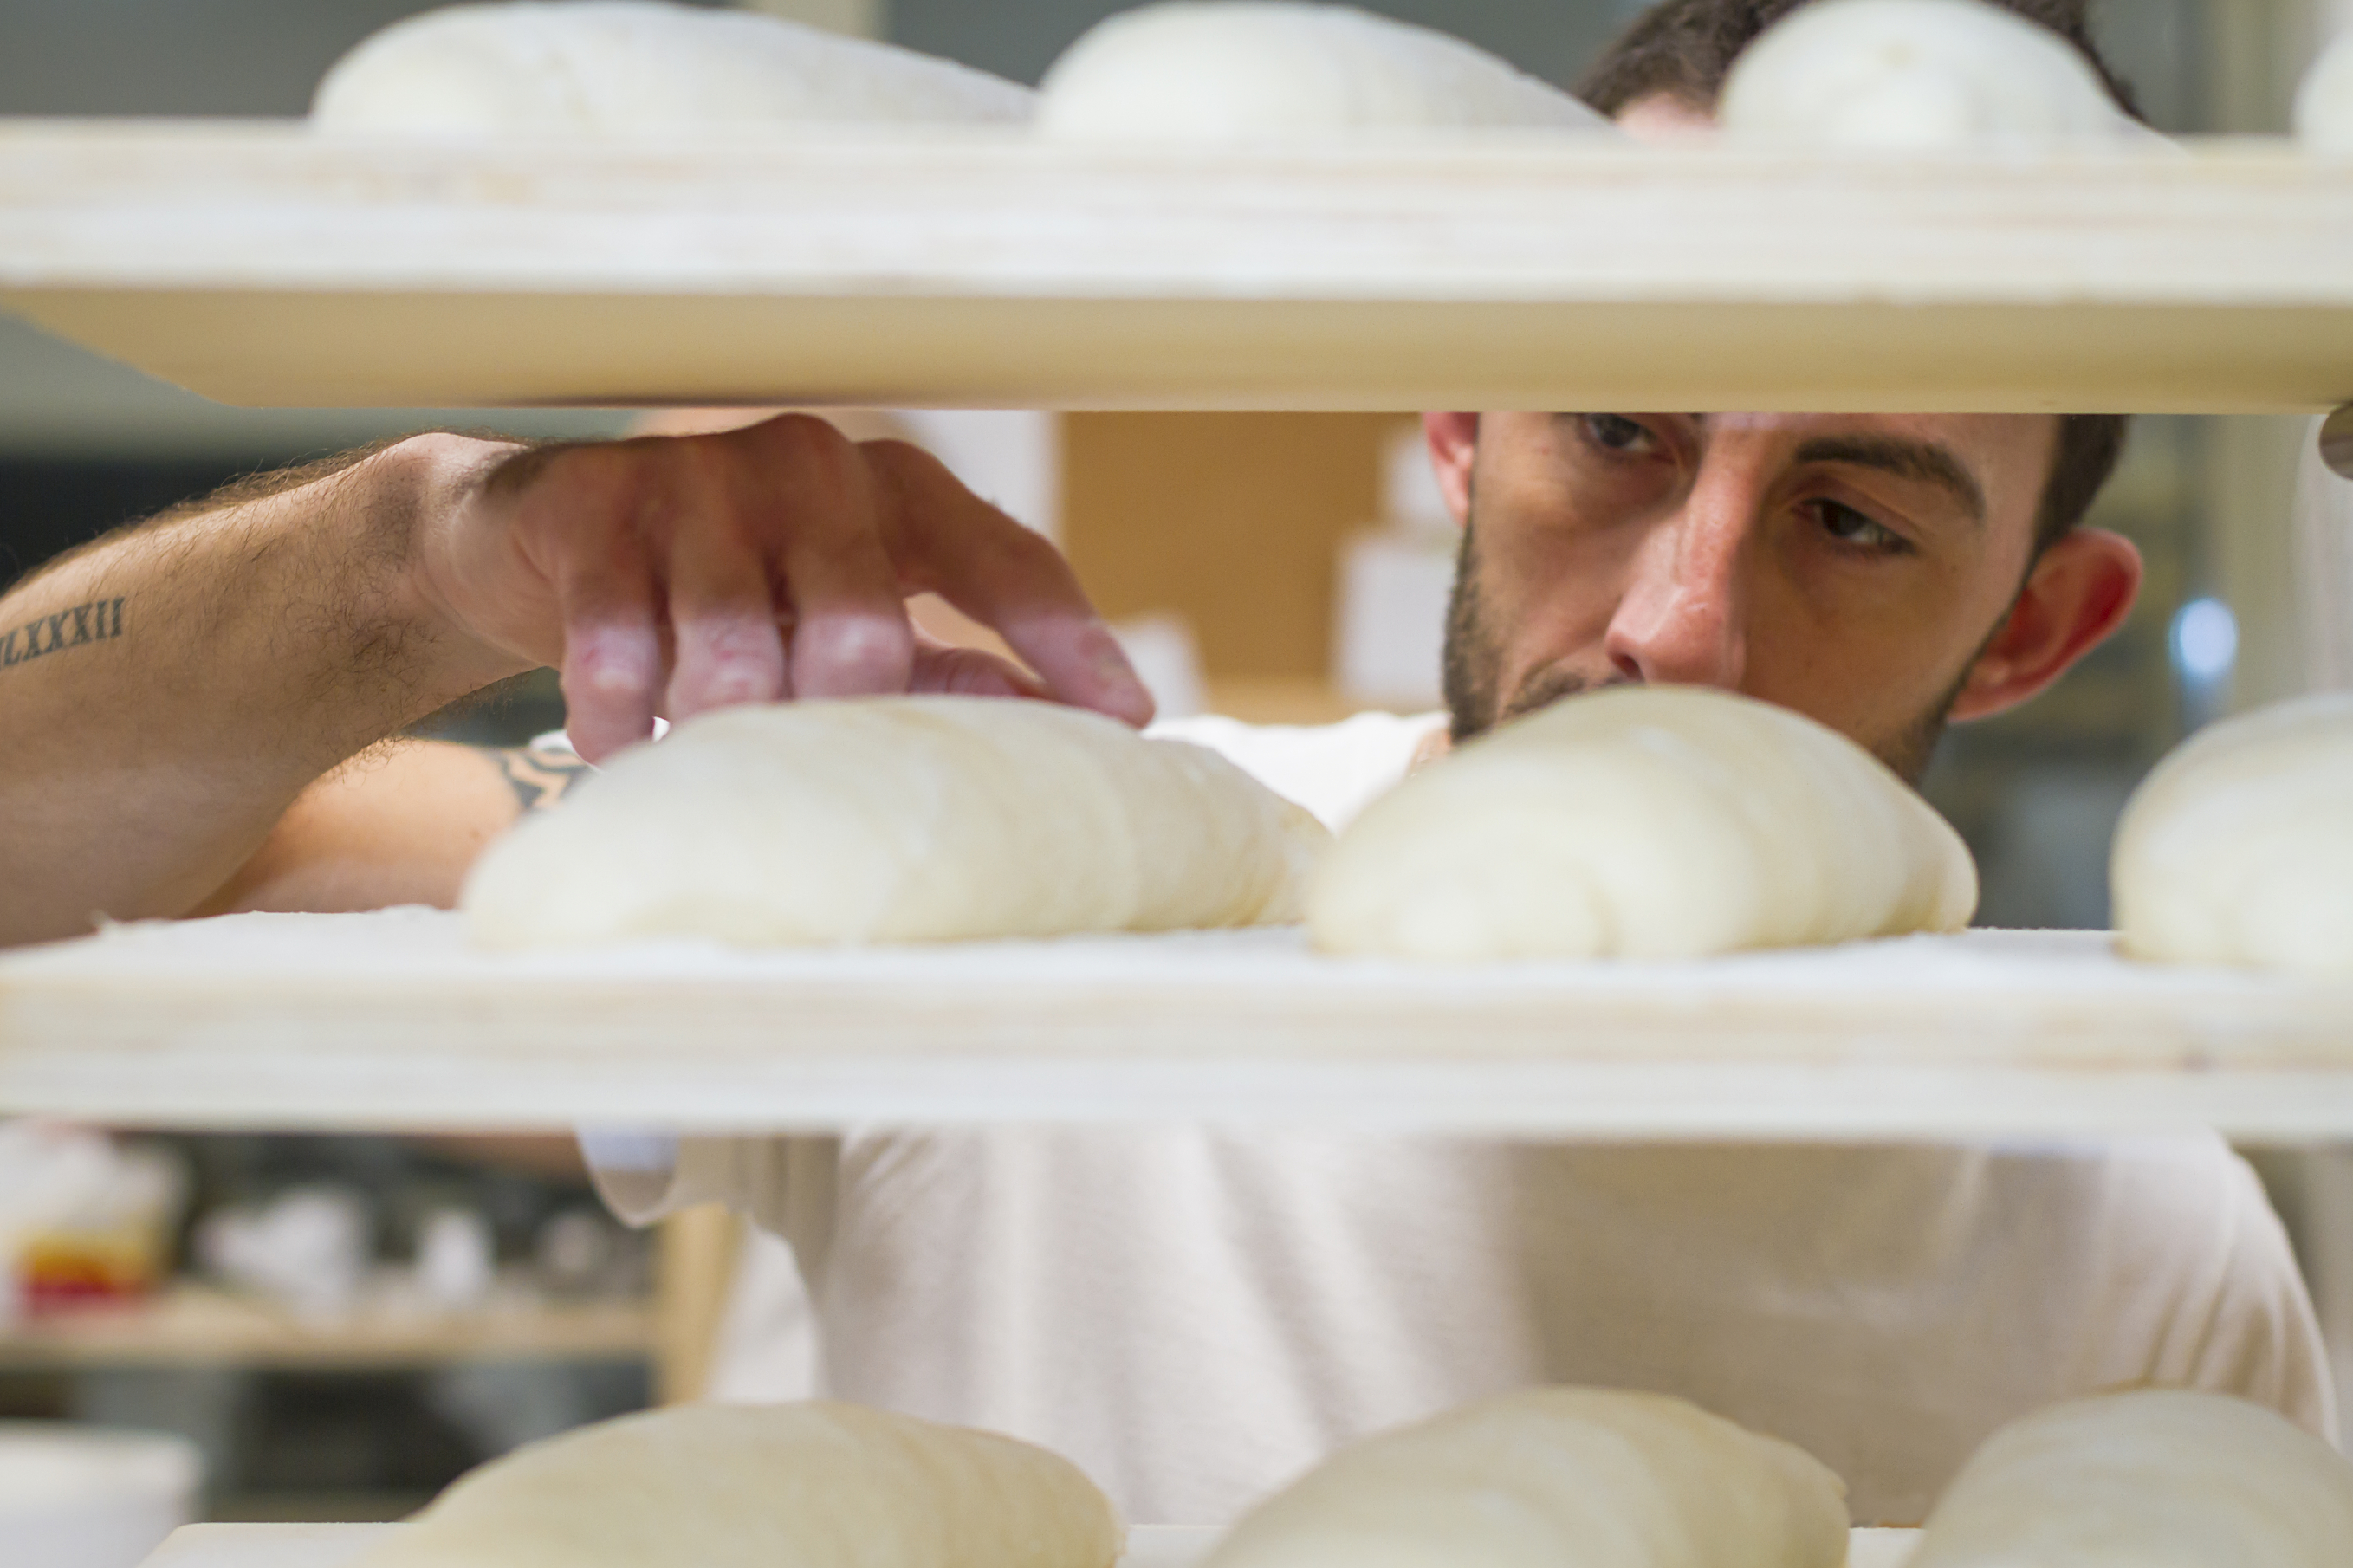 Baker checking bread dough. (stock image)